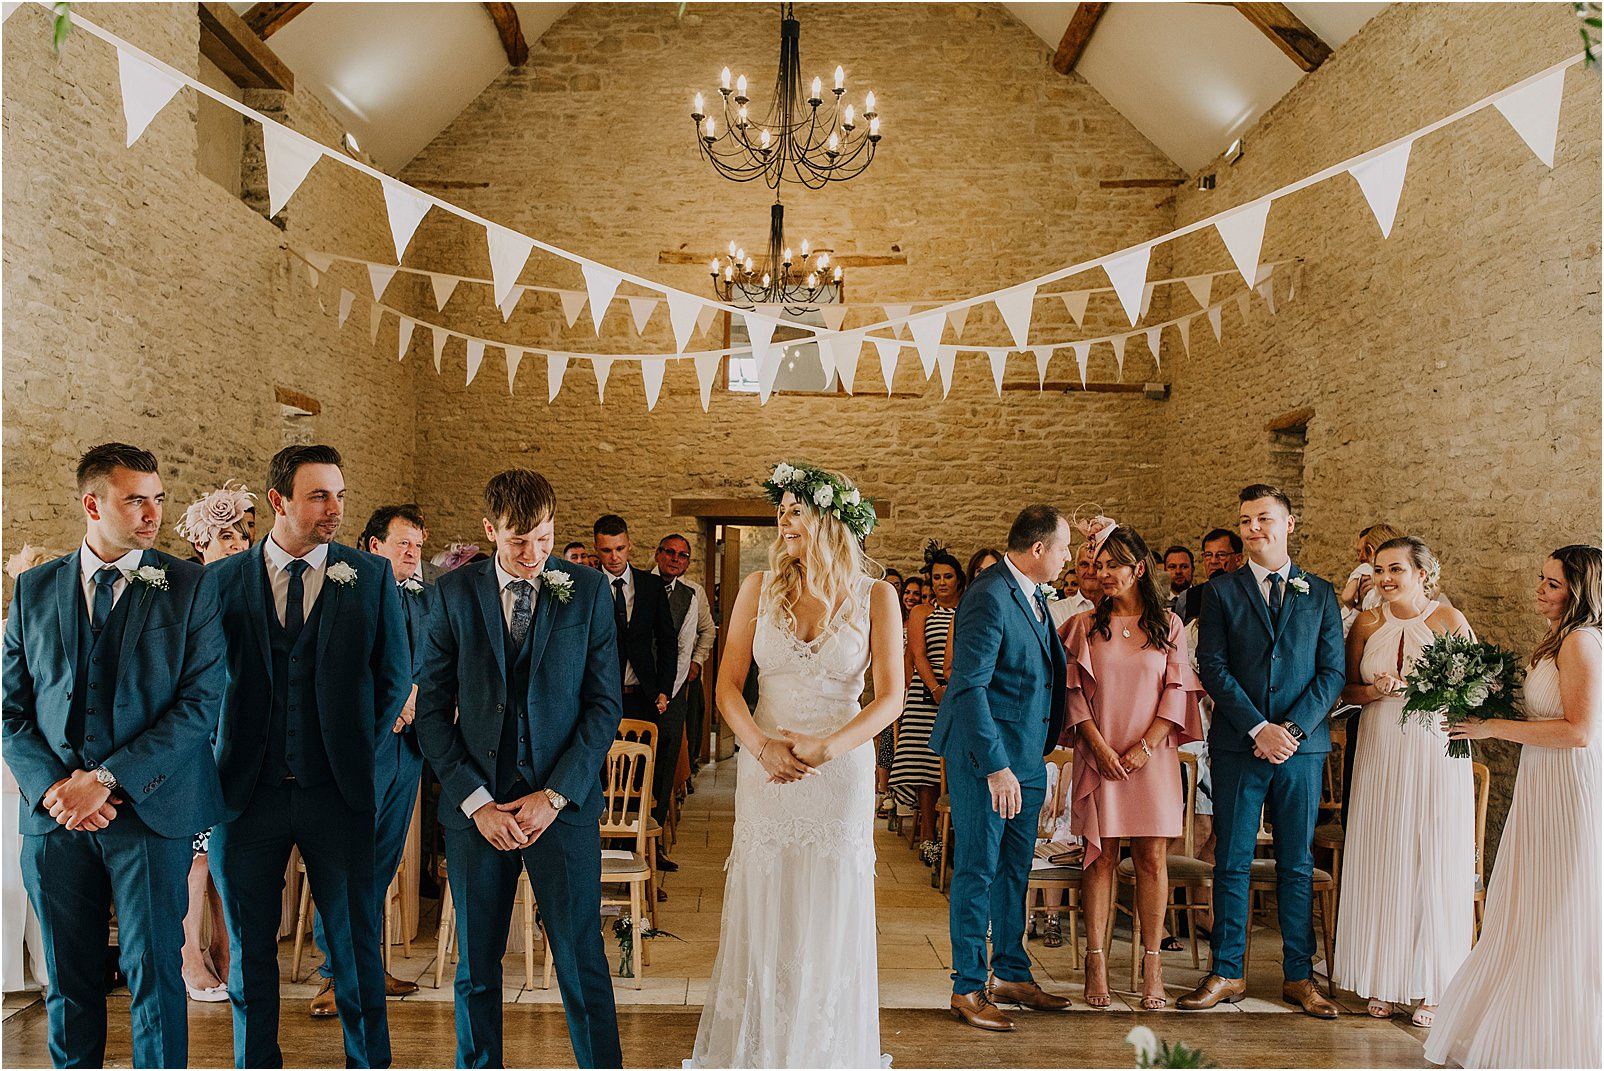 Bride and groom seeing each other for first time at Kingscote Barn